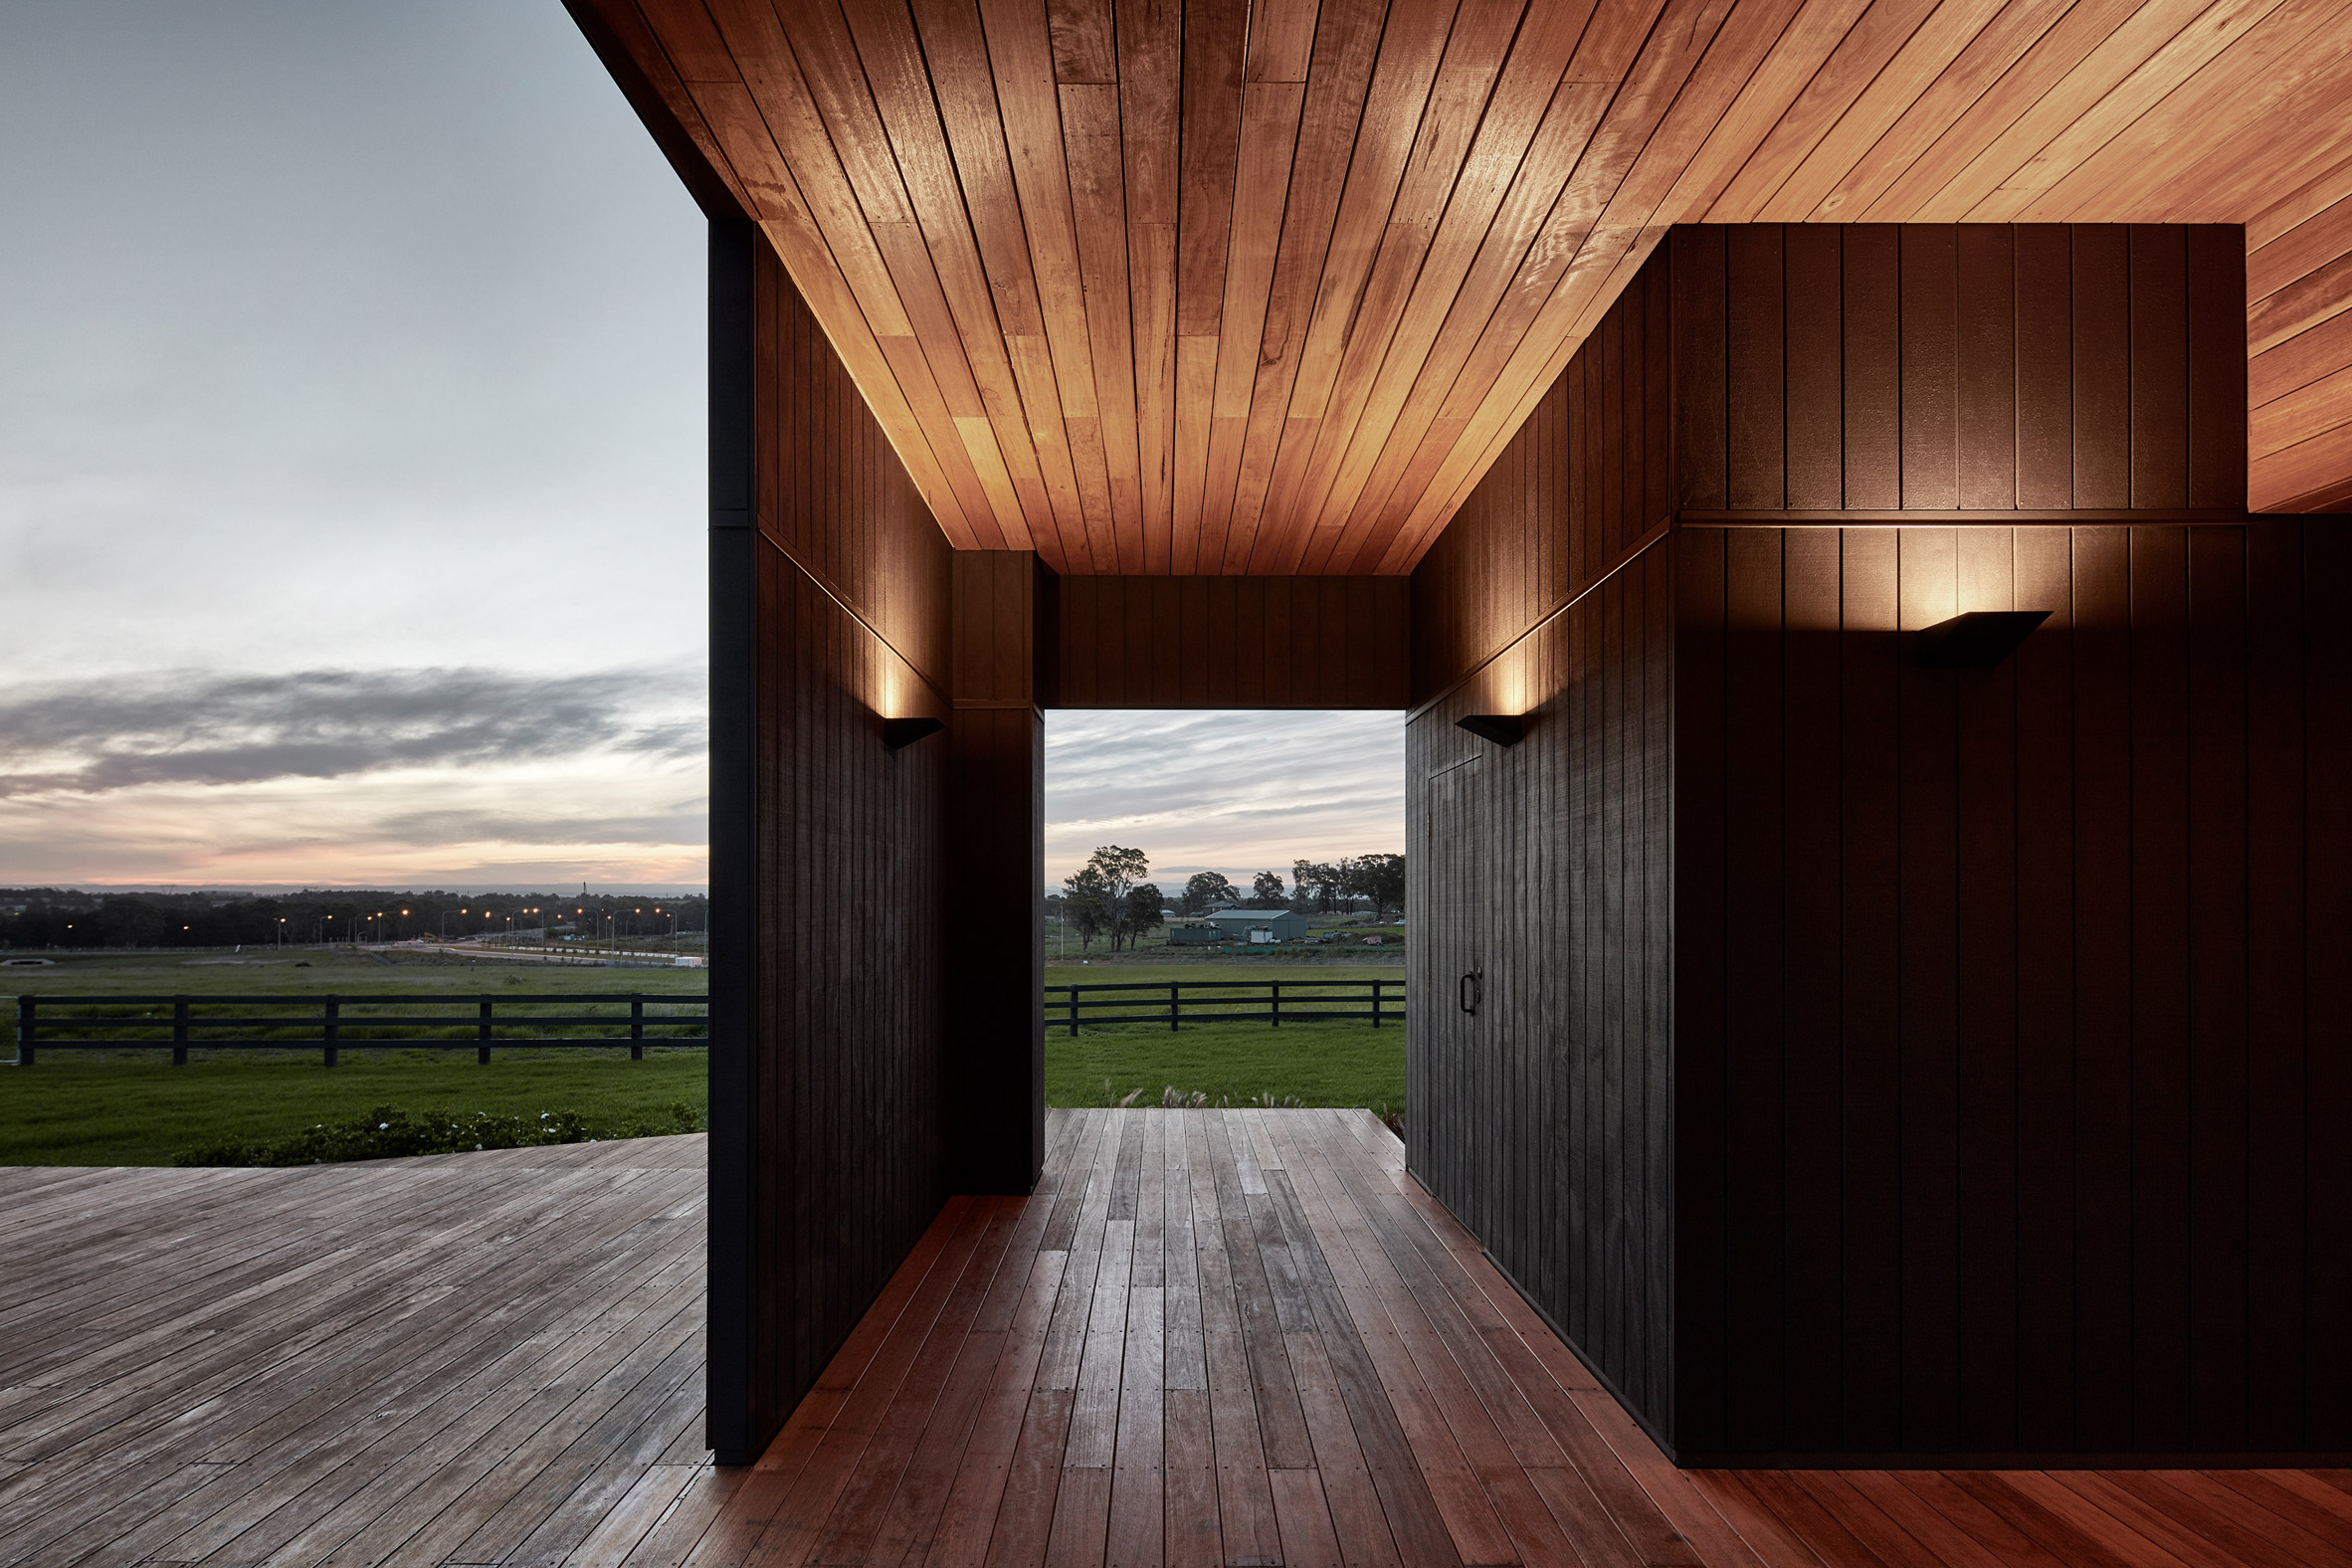 The Dairy by THOSE architects